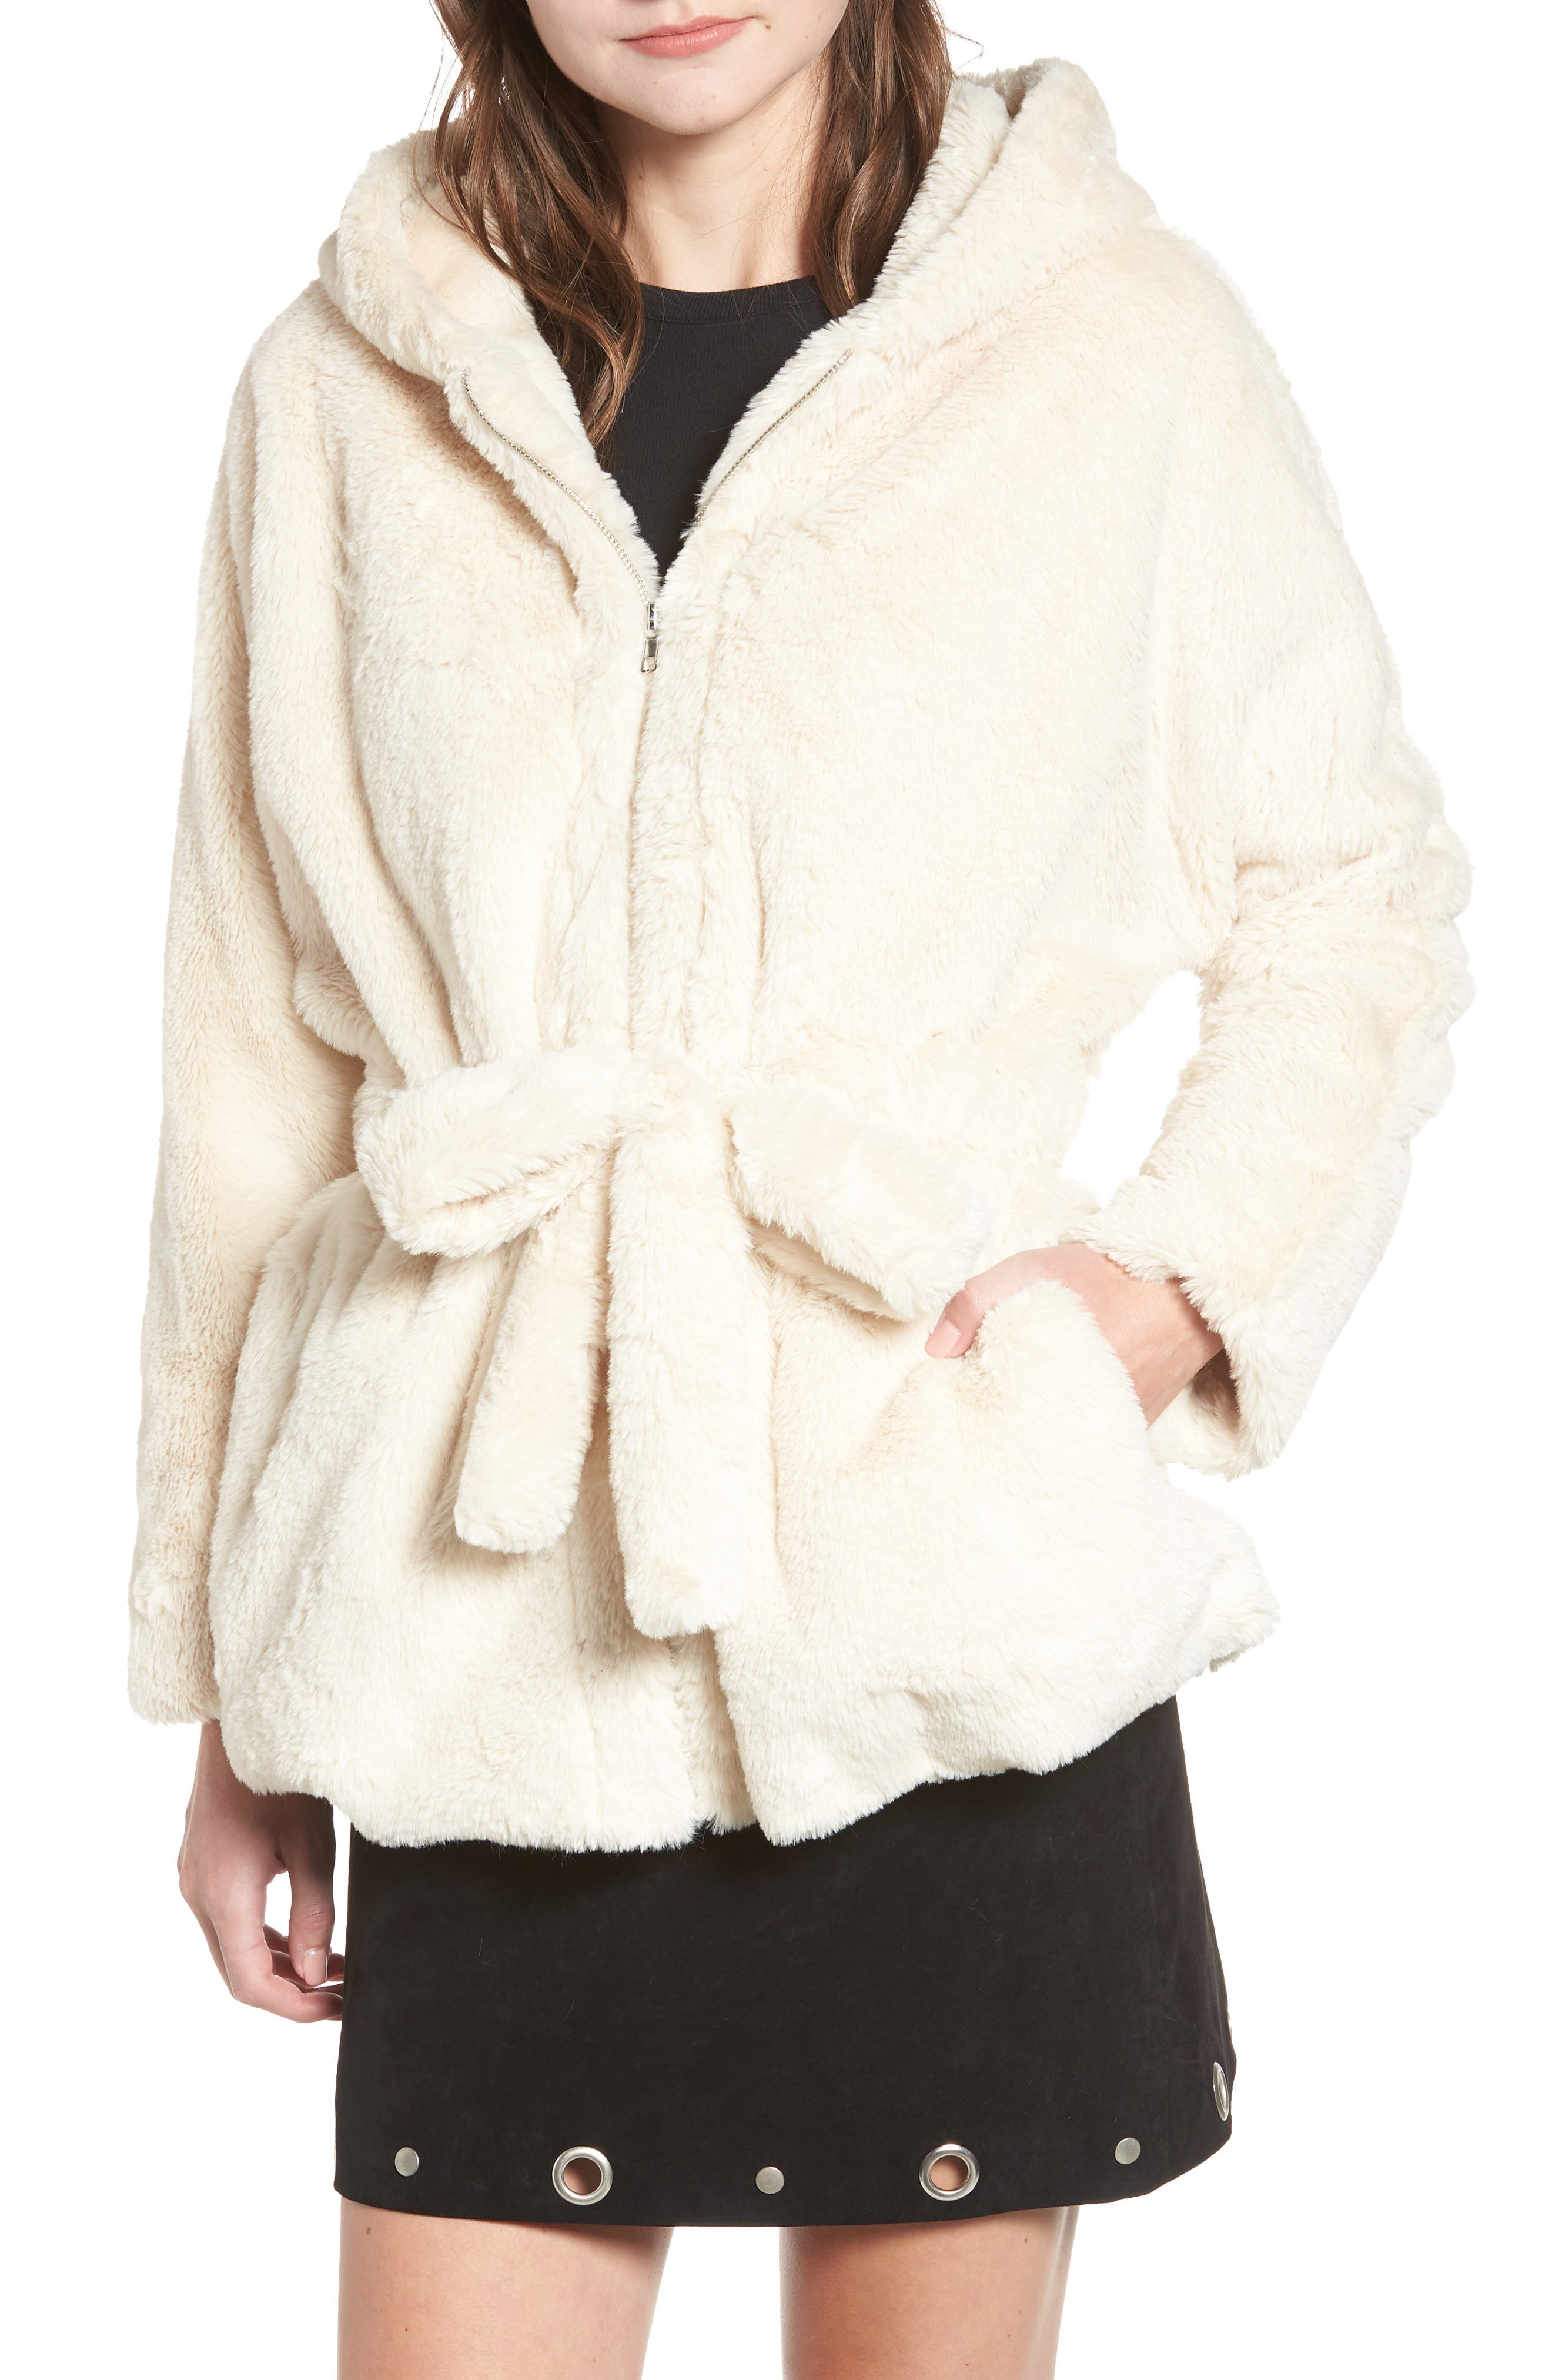 MOON RIVER Faux Fur Hooded Jacket in Cream